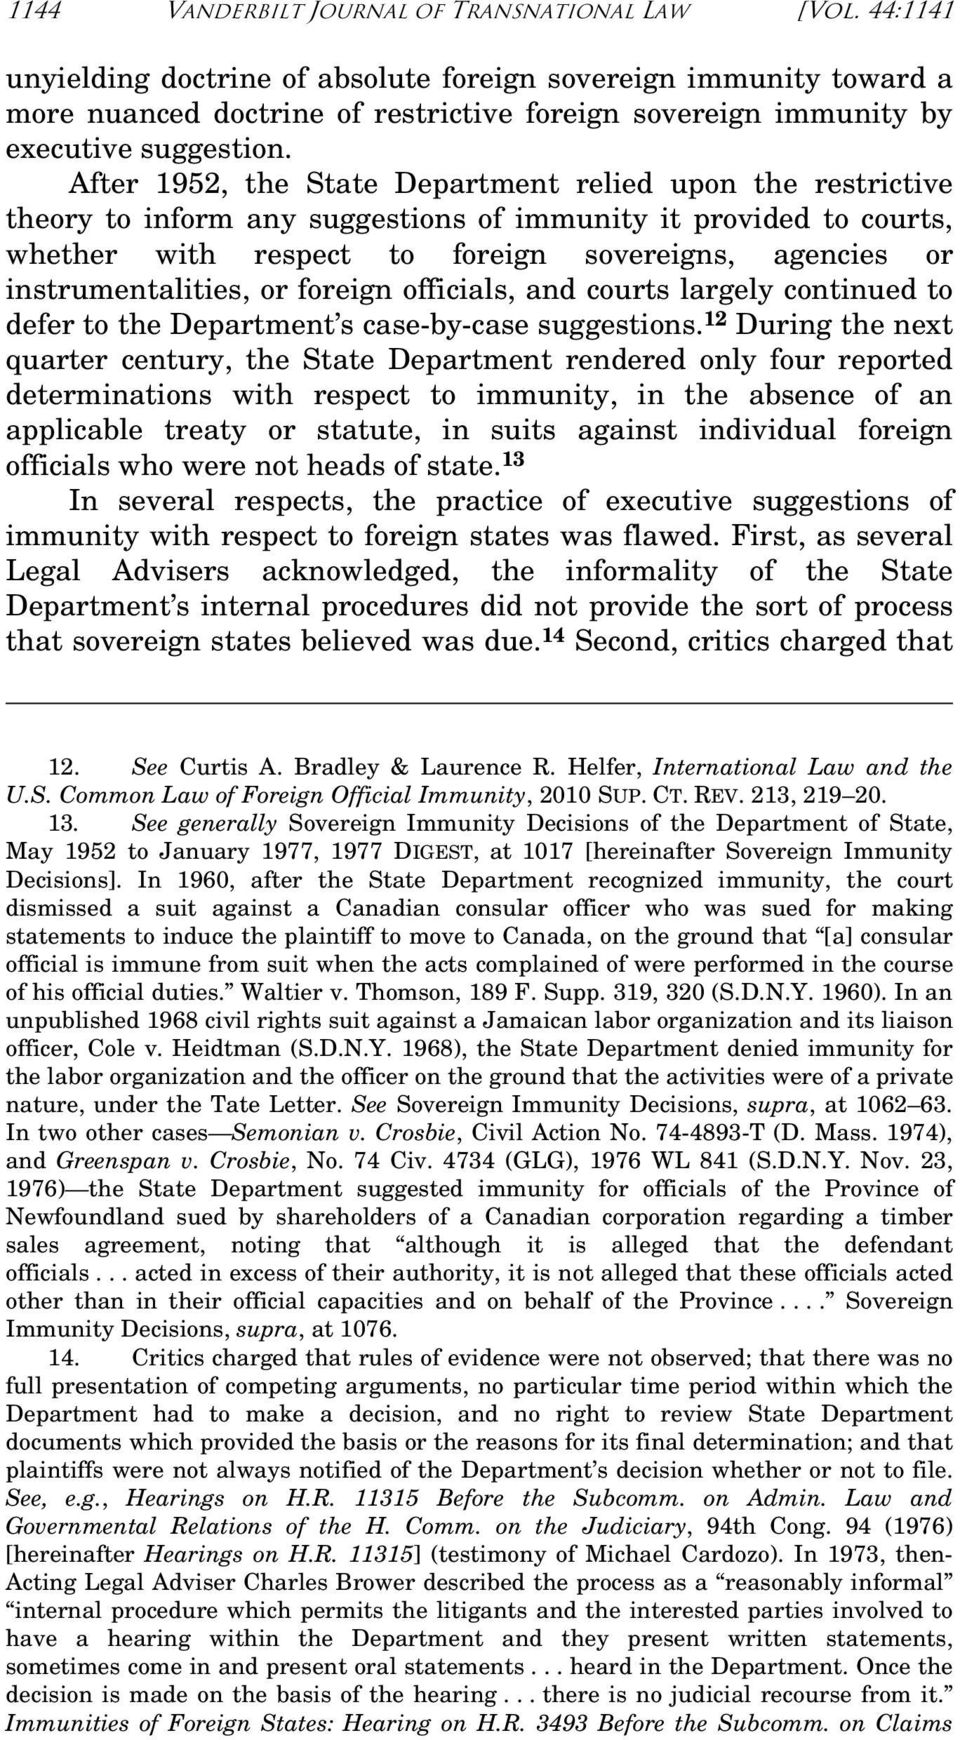 After 1952, the State Department relied upon the restrictive theory to inform any suggestions of immunity it provided to courts, whether with respect to foreign sovereigns, agencies or